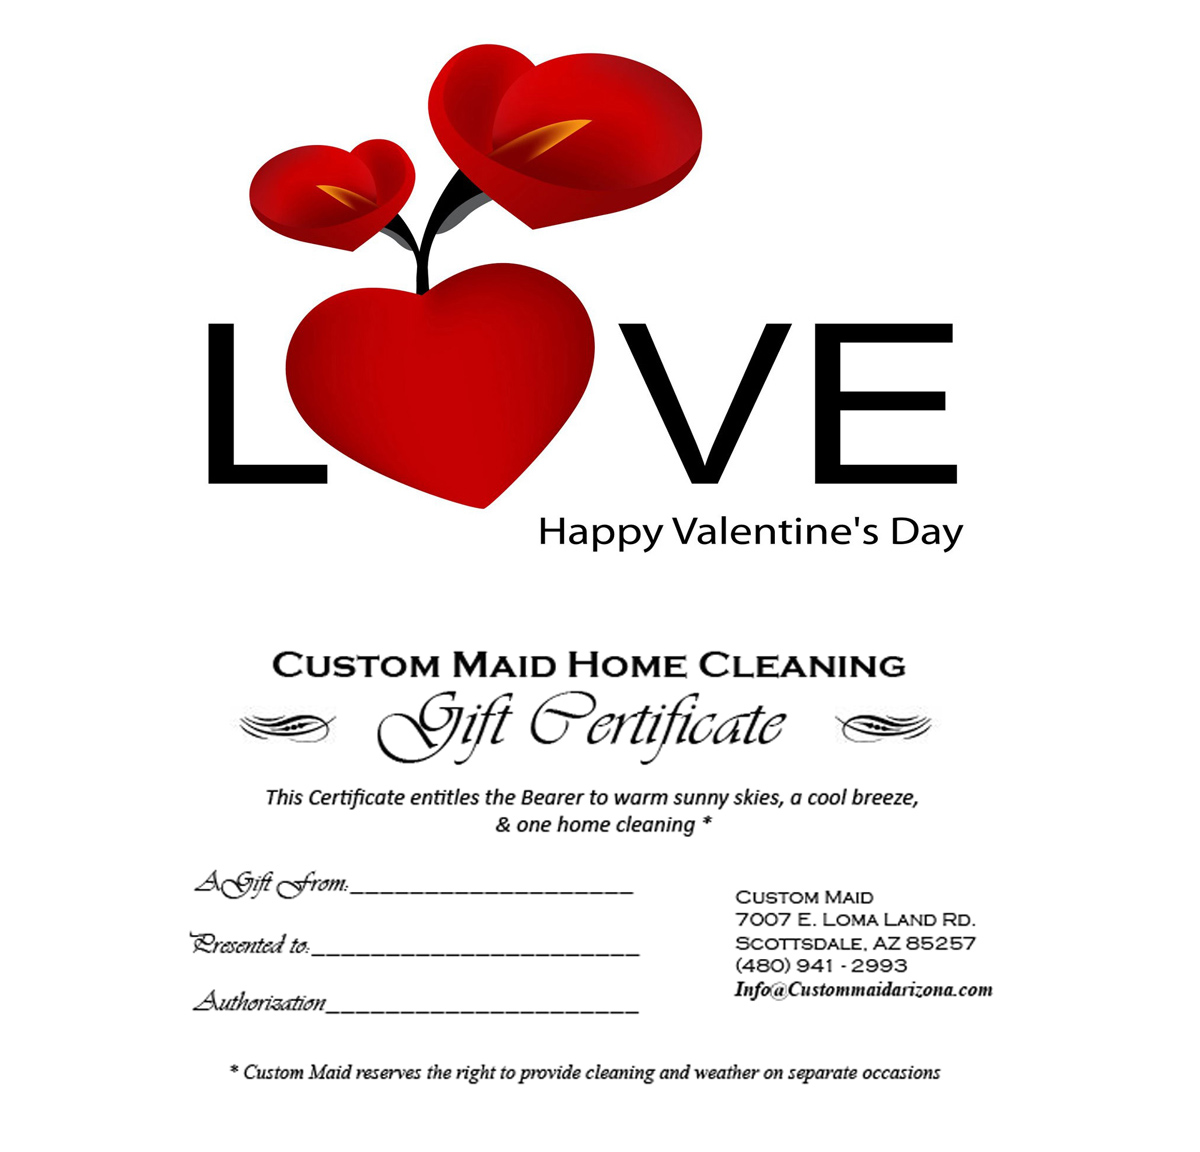 printable-download-doc-editable-valentines-day-wallpaper